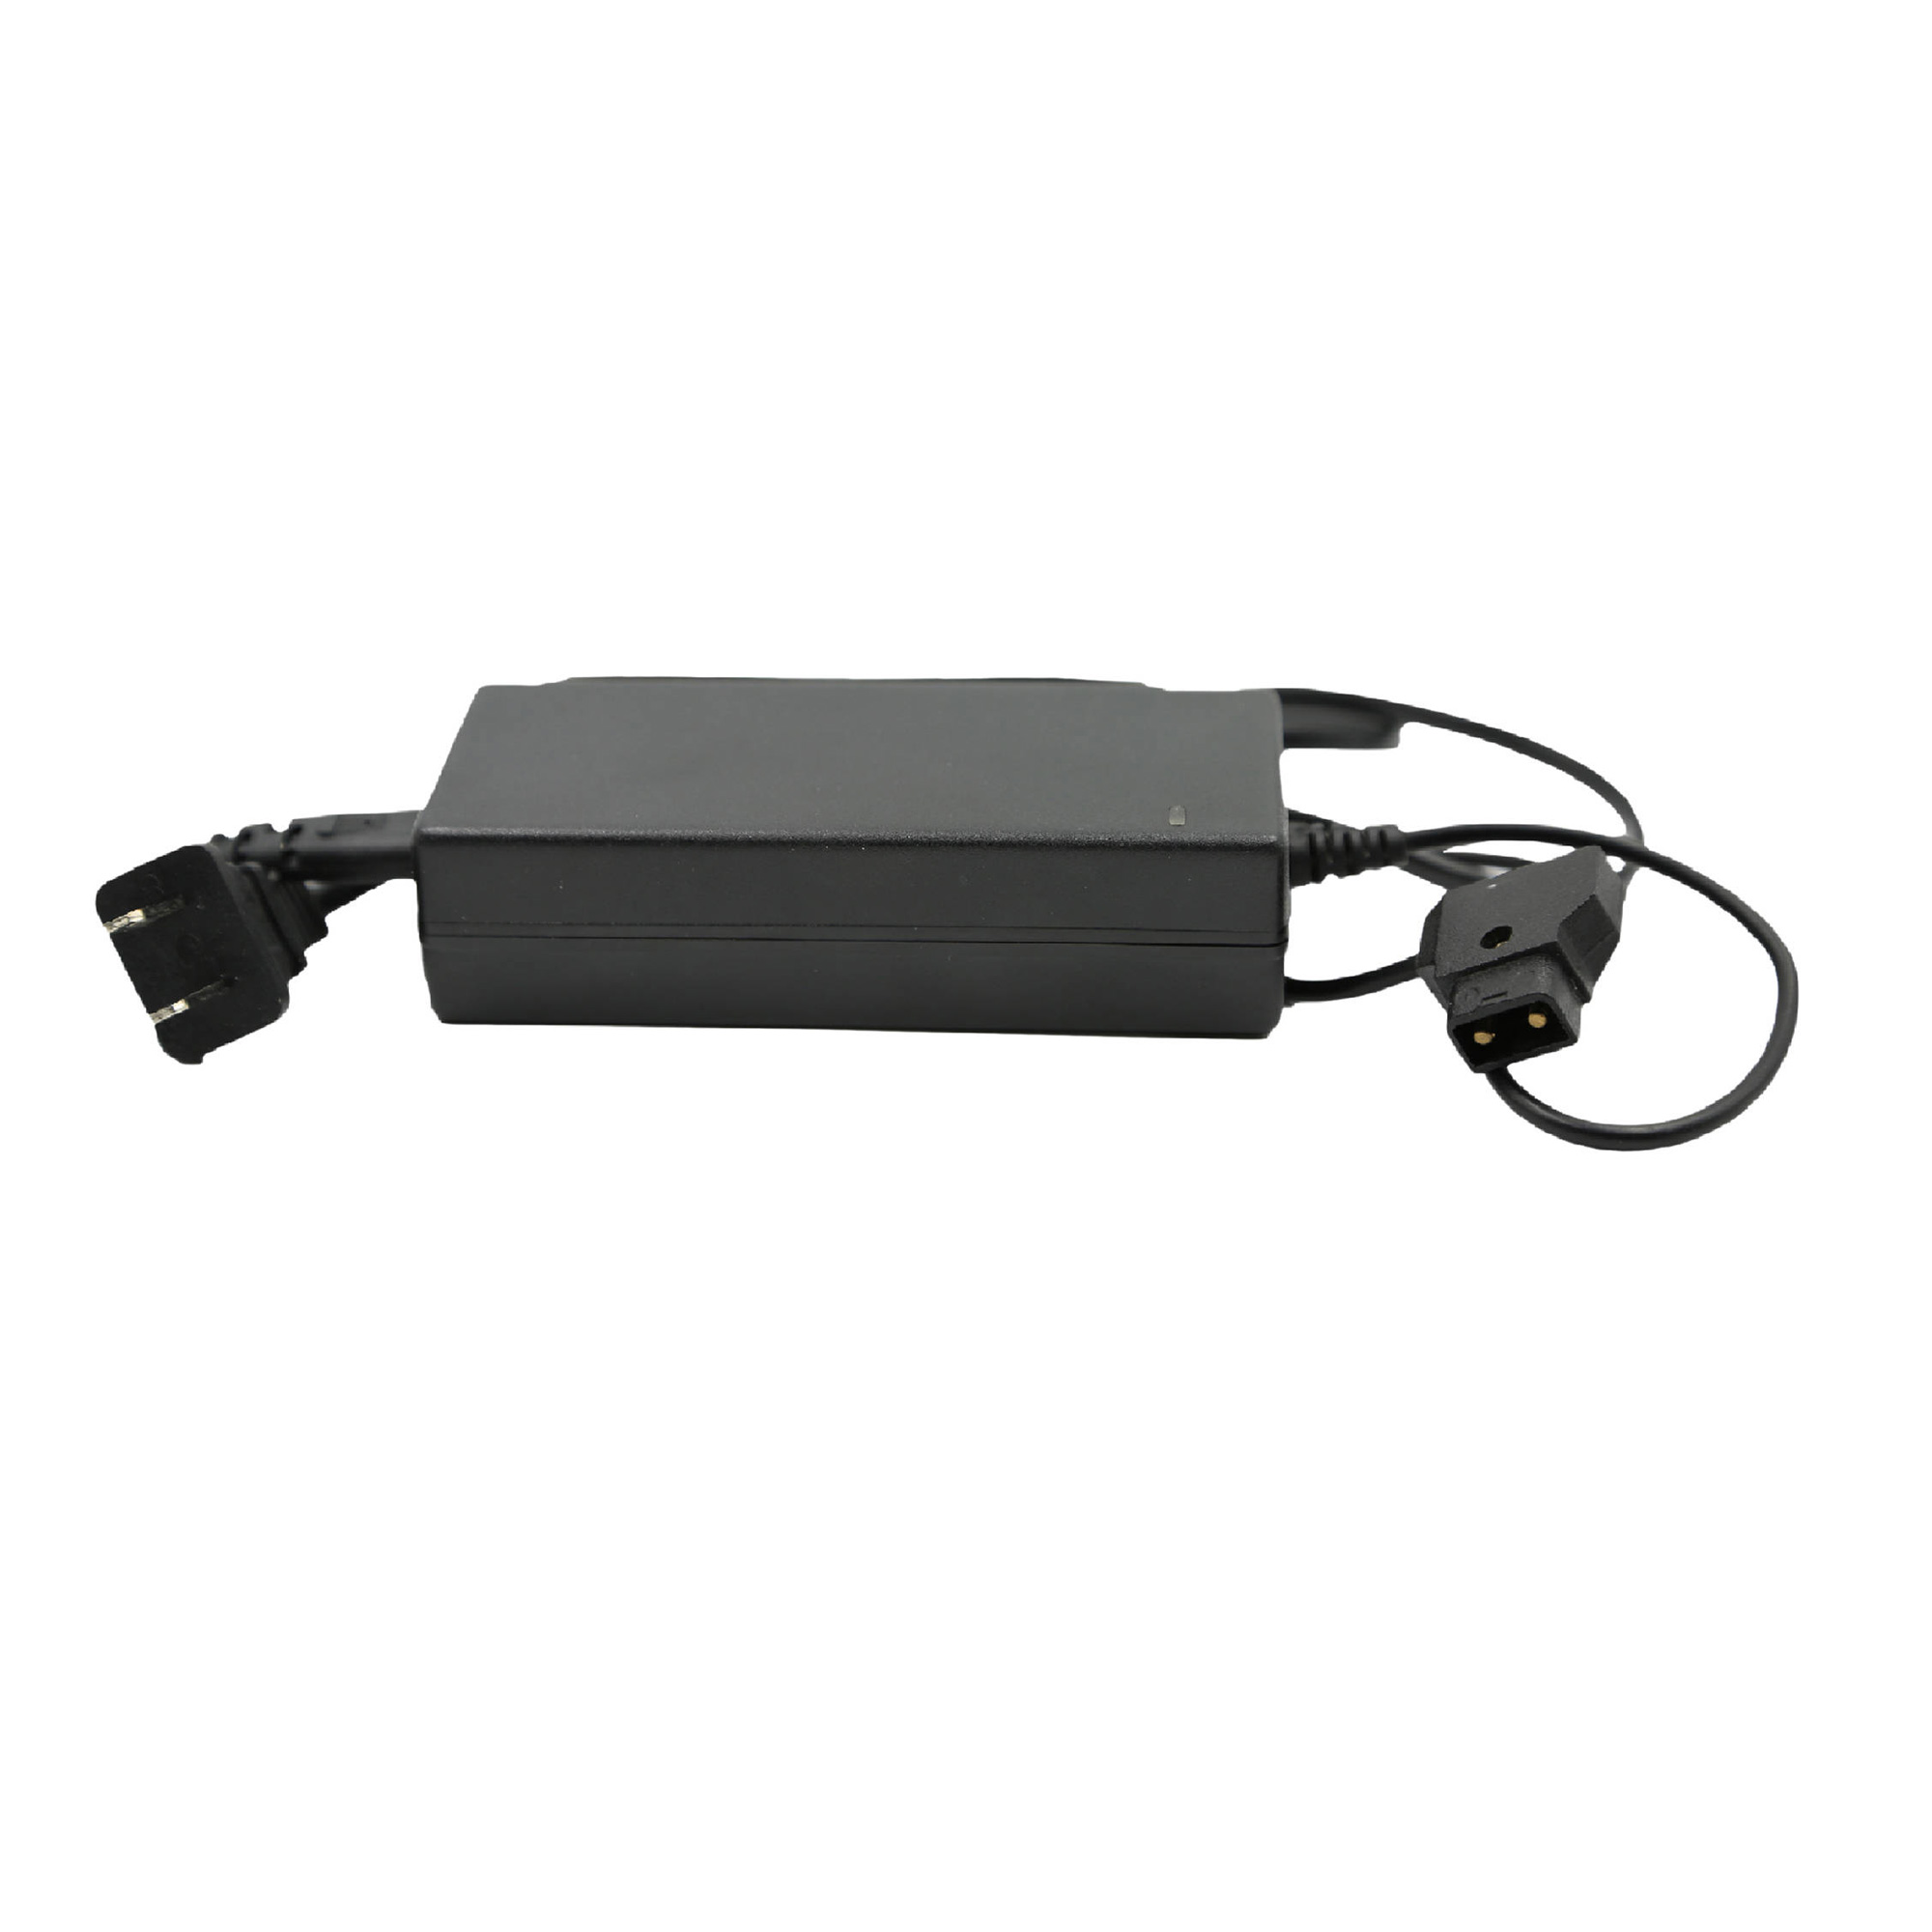 D-Tap Pro Battery Charger 16.8V  2.5A